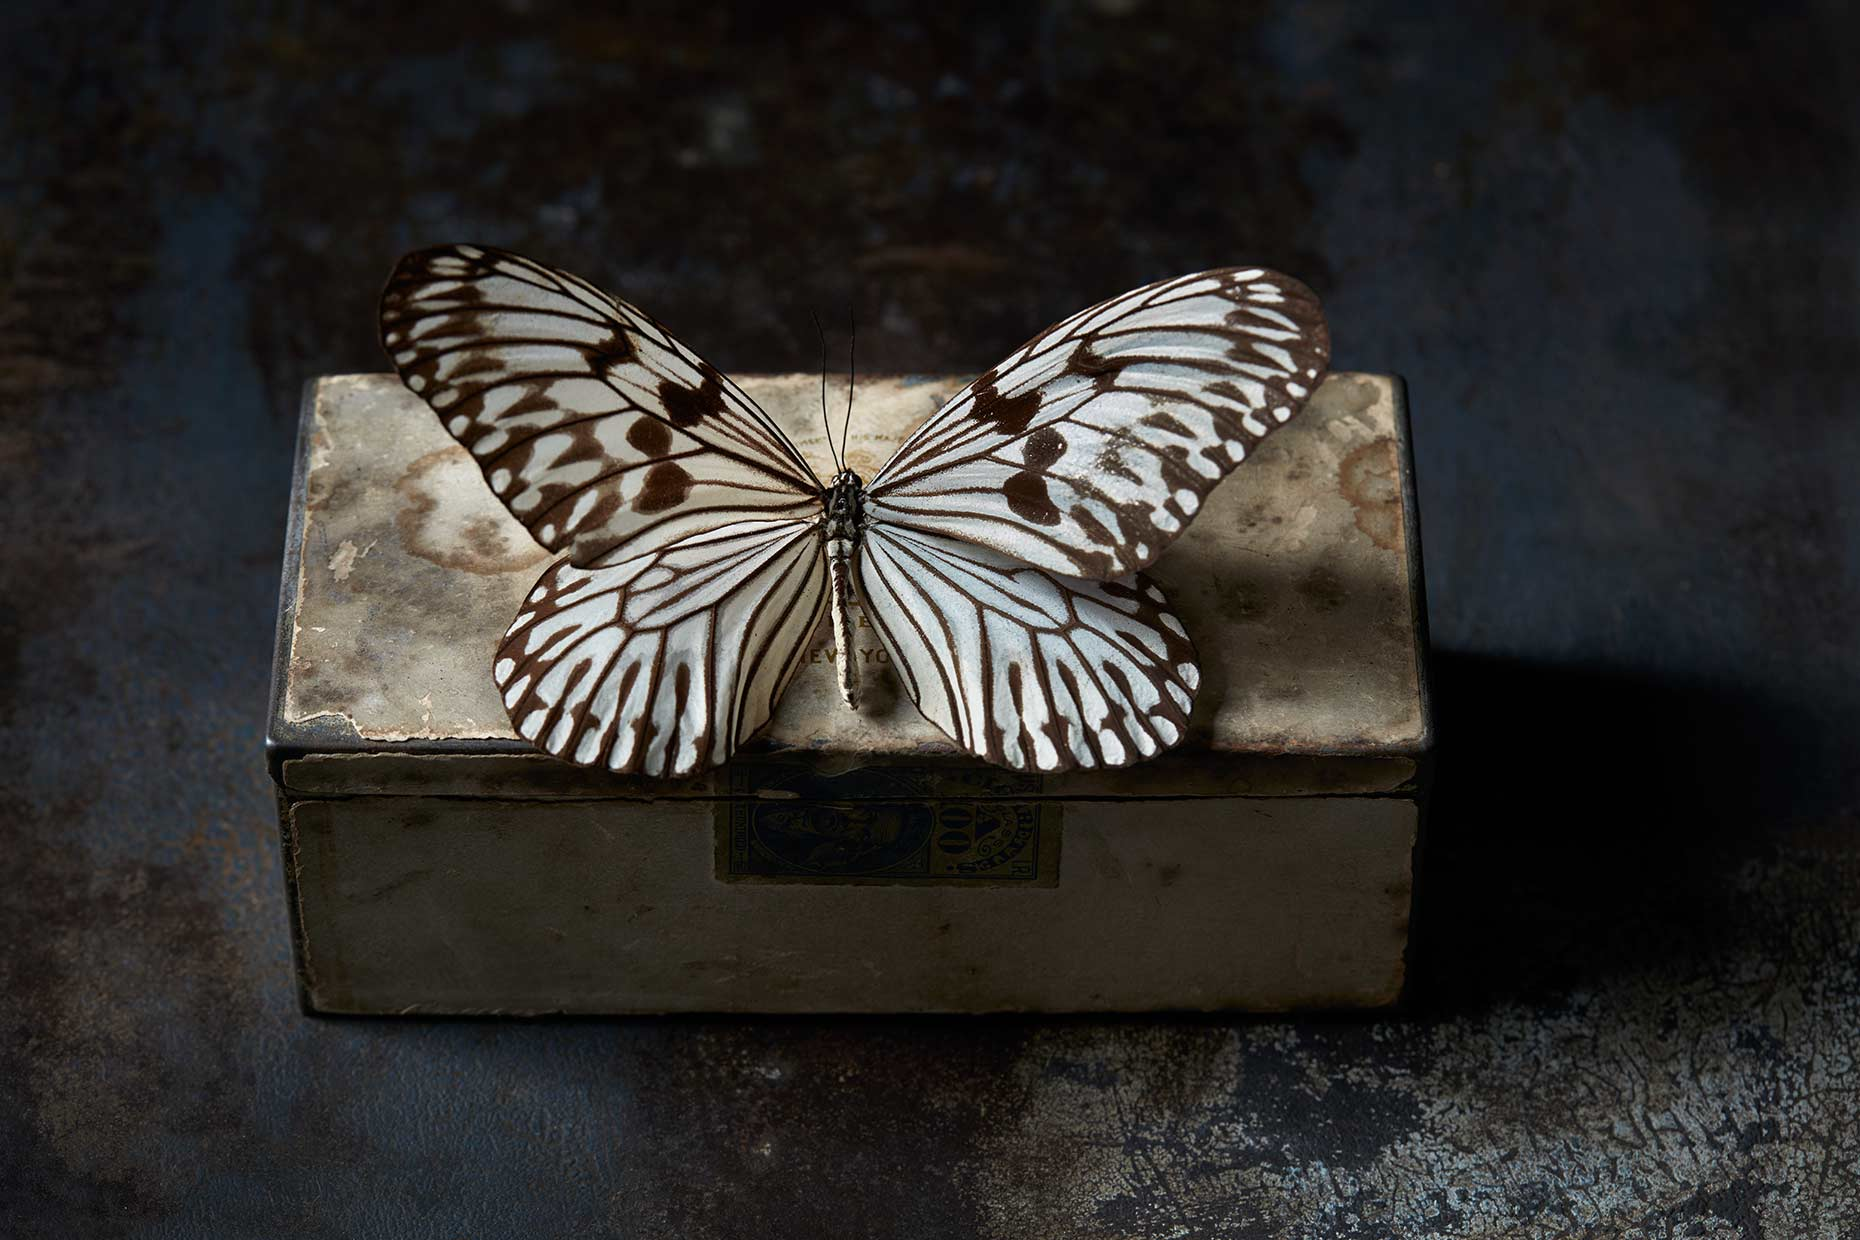 Beautiful butterfly seated on a old metal box.